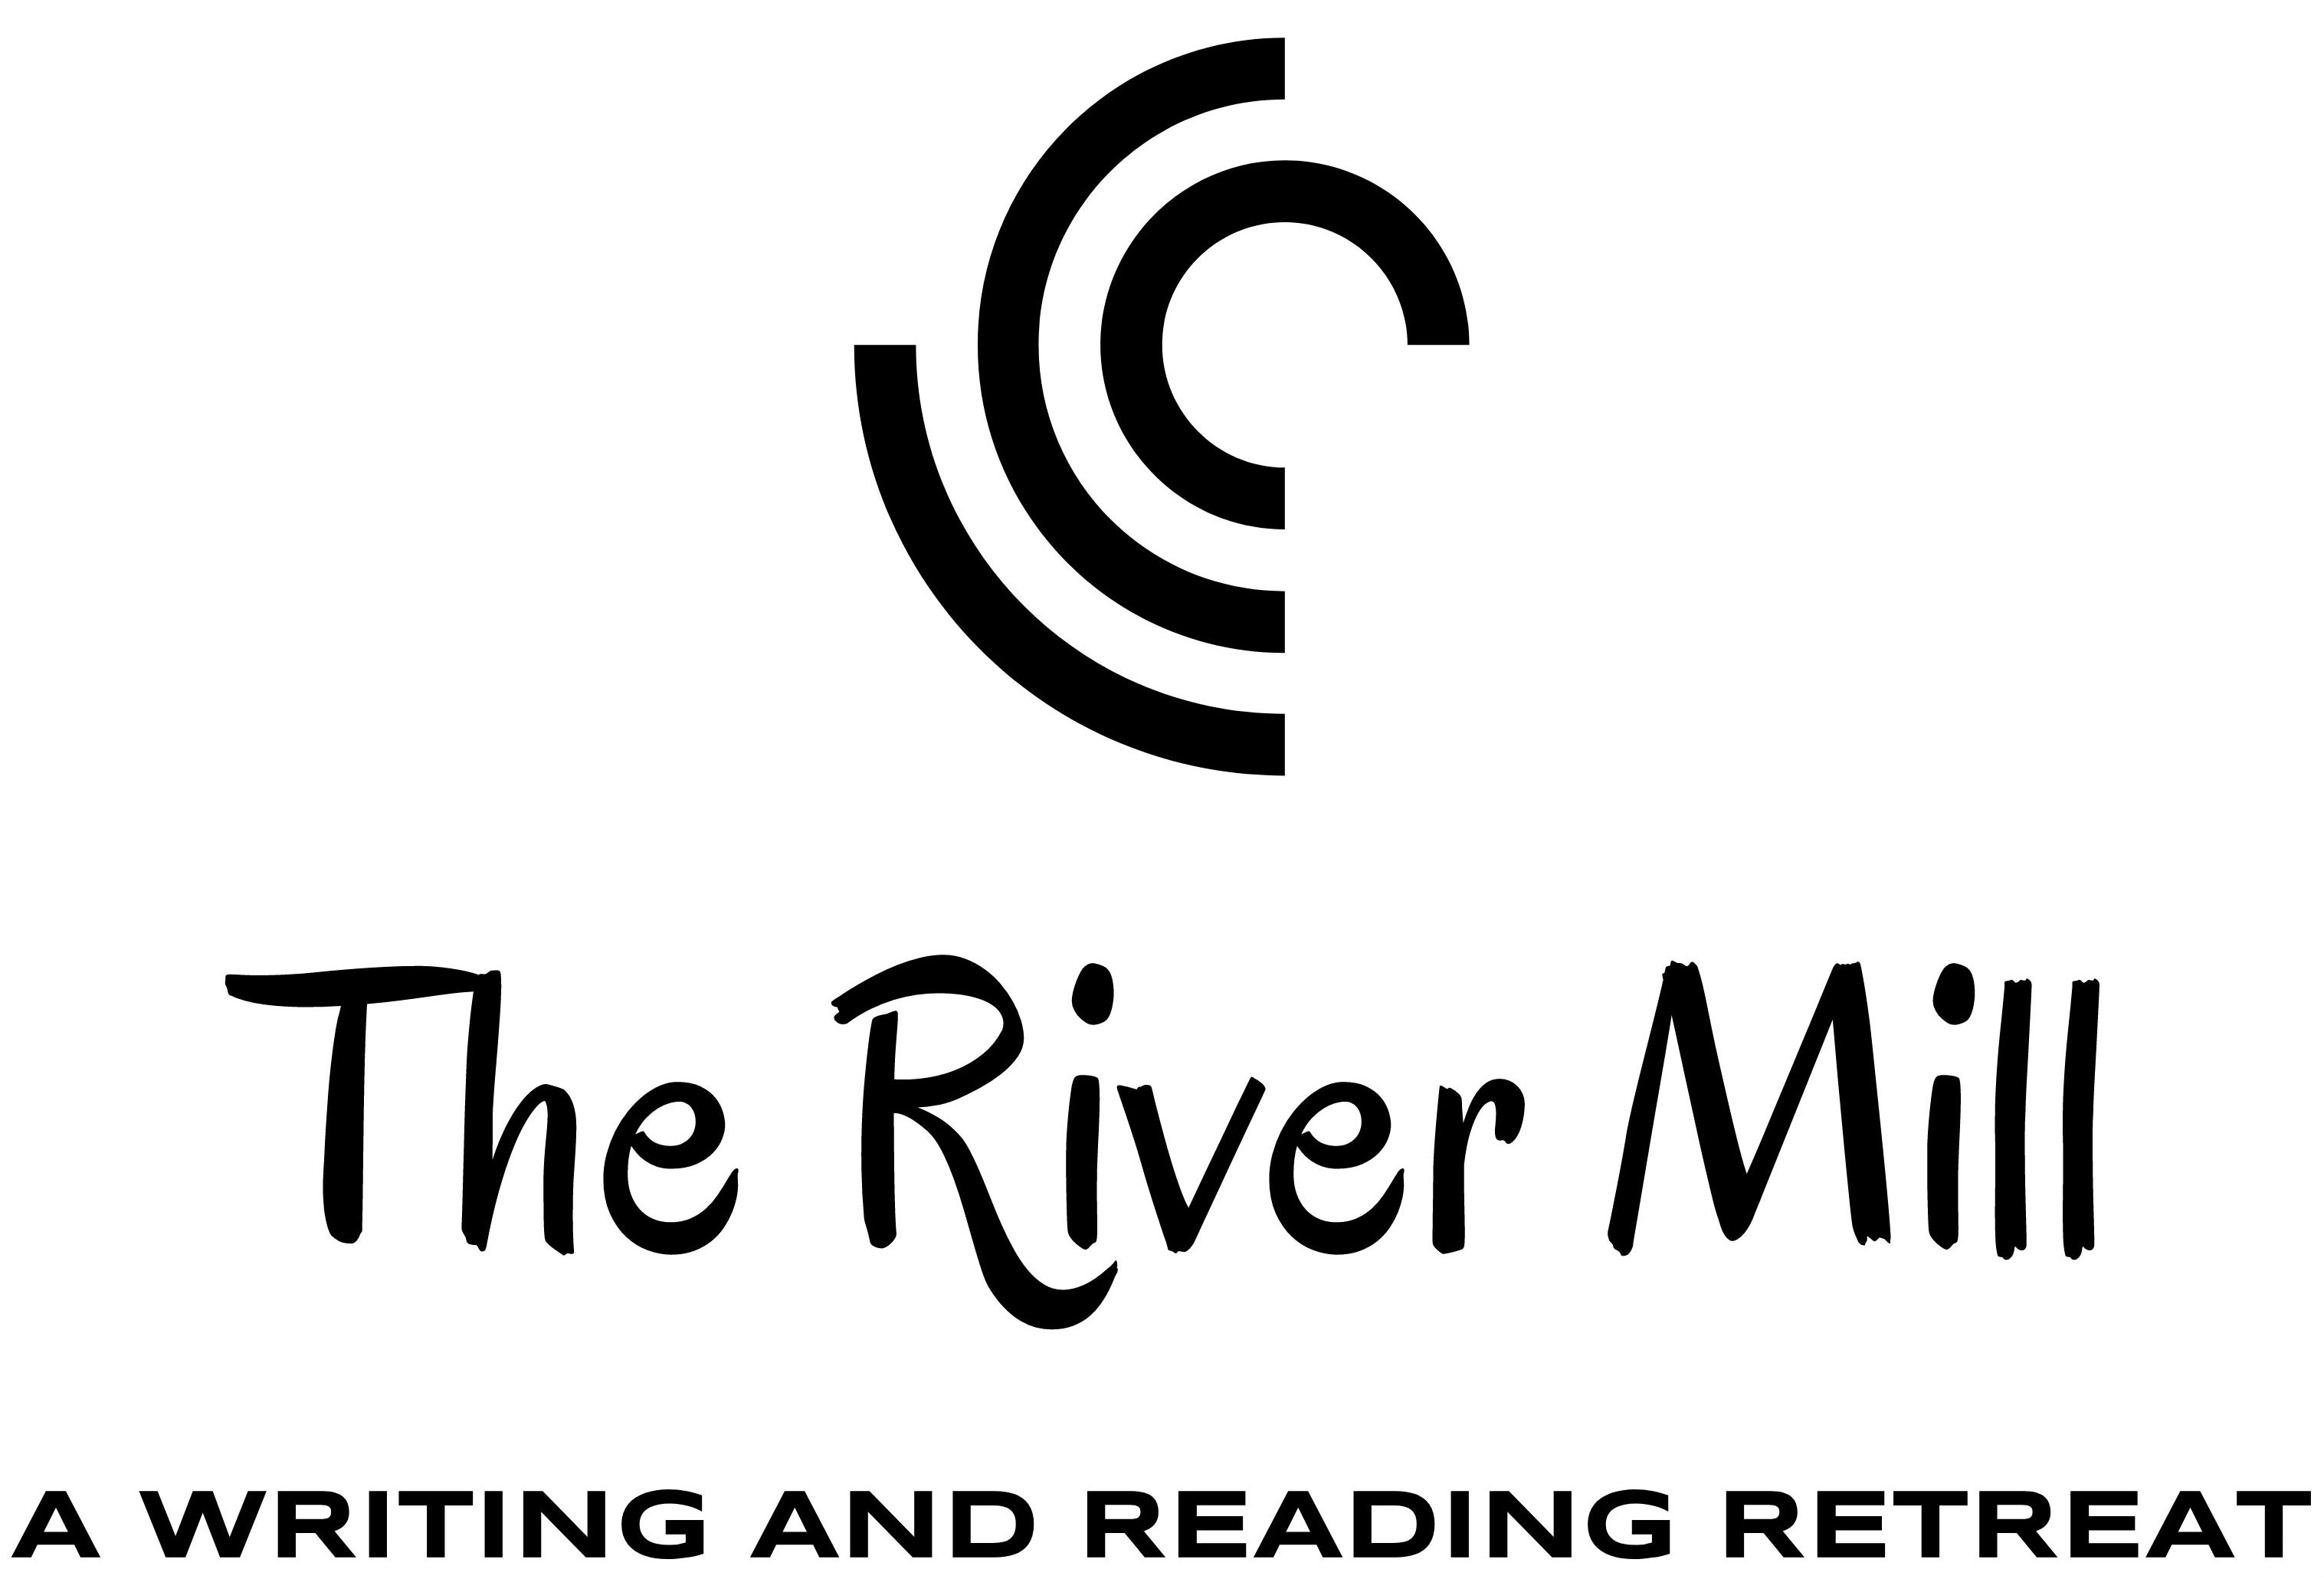 river-mill-logo-copy.jpg